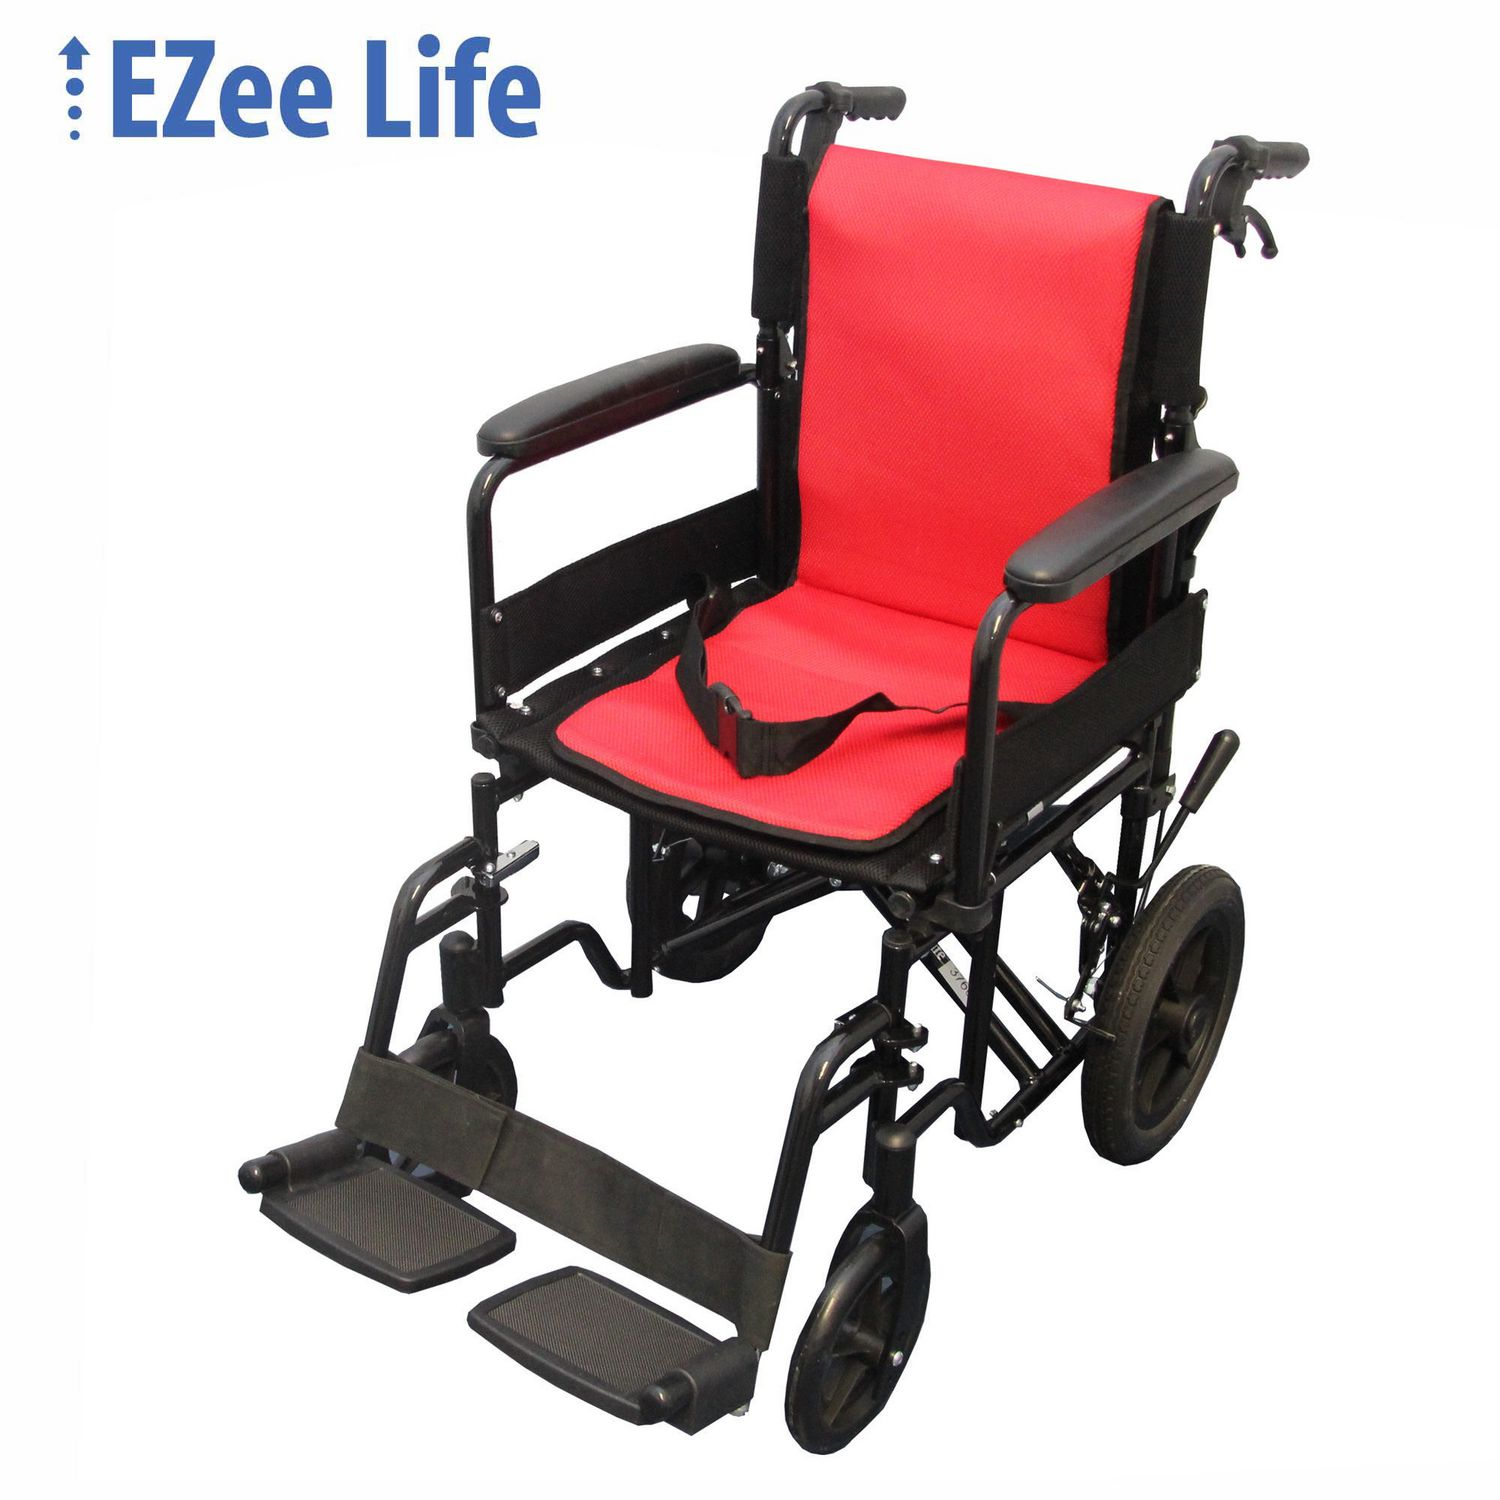 decor in lightweight with ideas transport epic additional chair chairs home